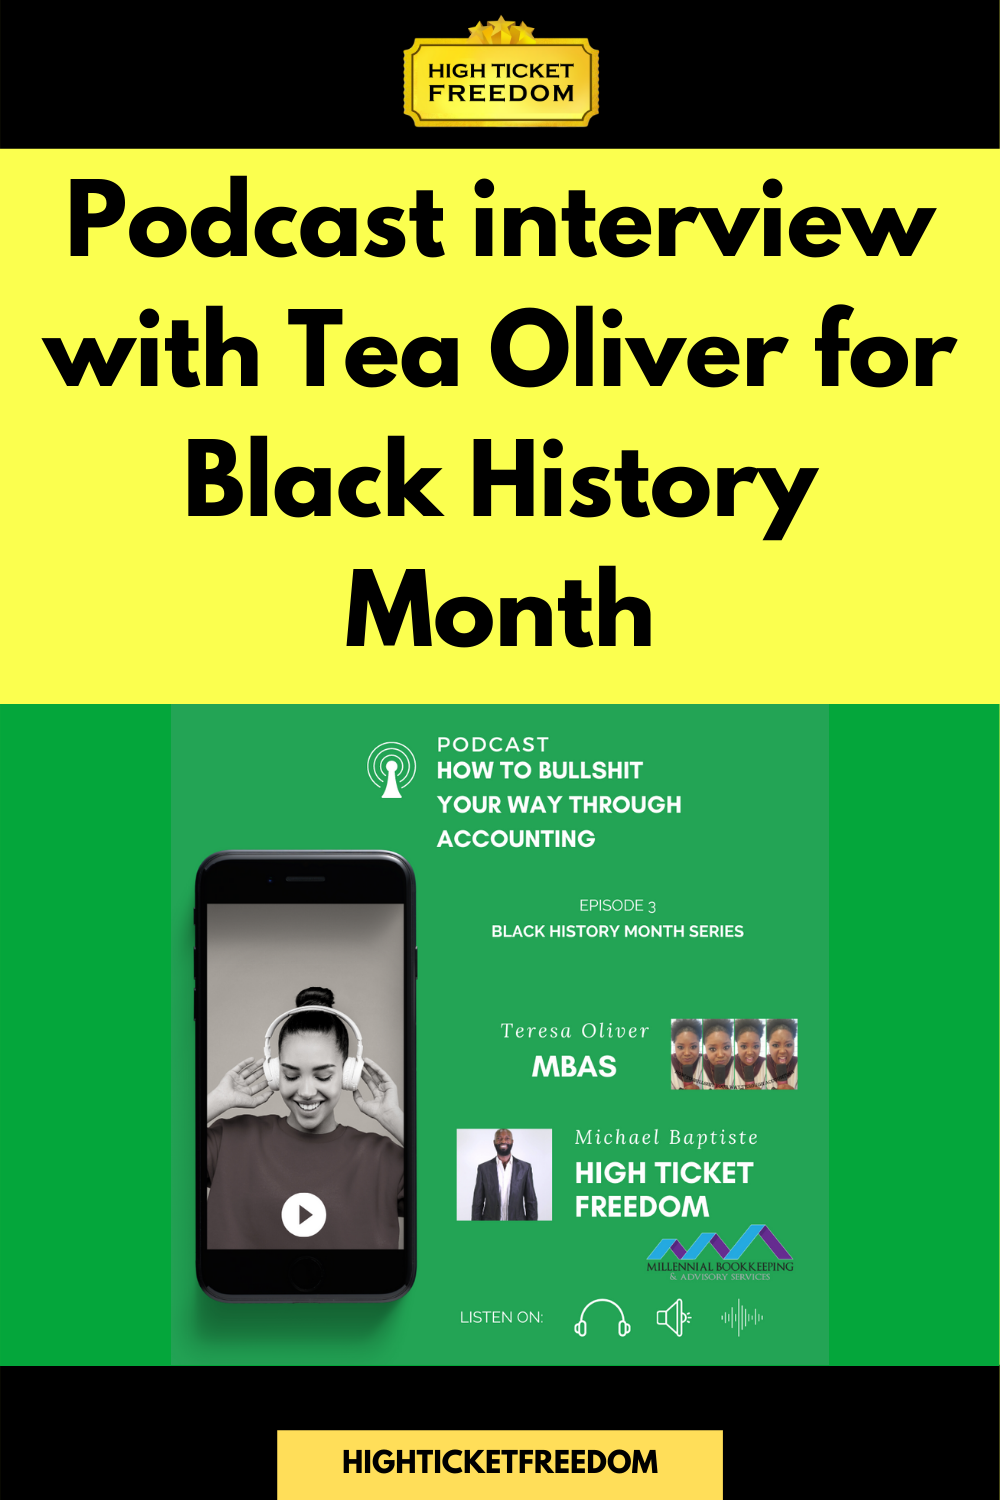 Podcast interview with Tea Oliver for Black History Month